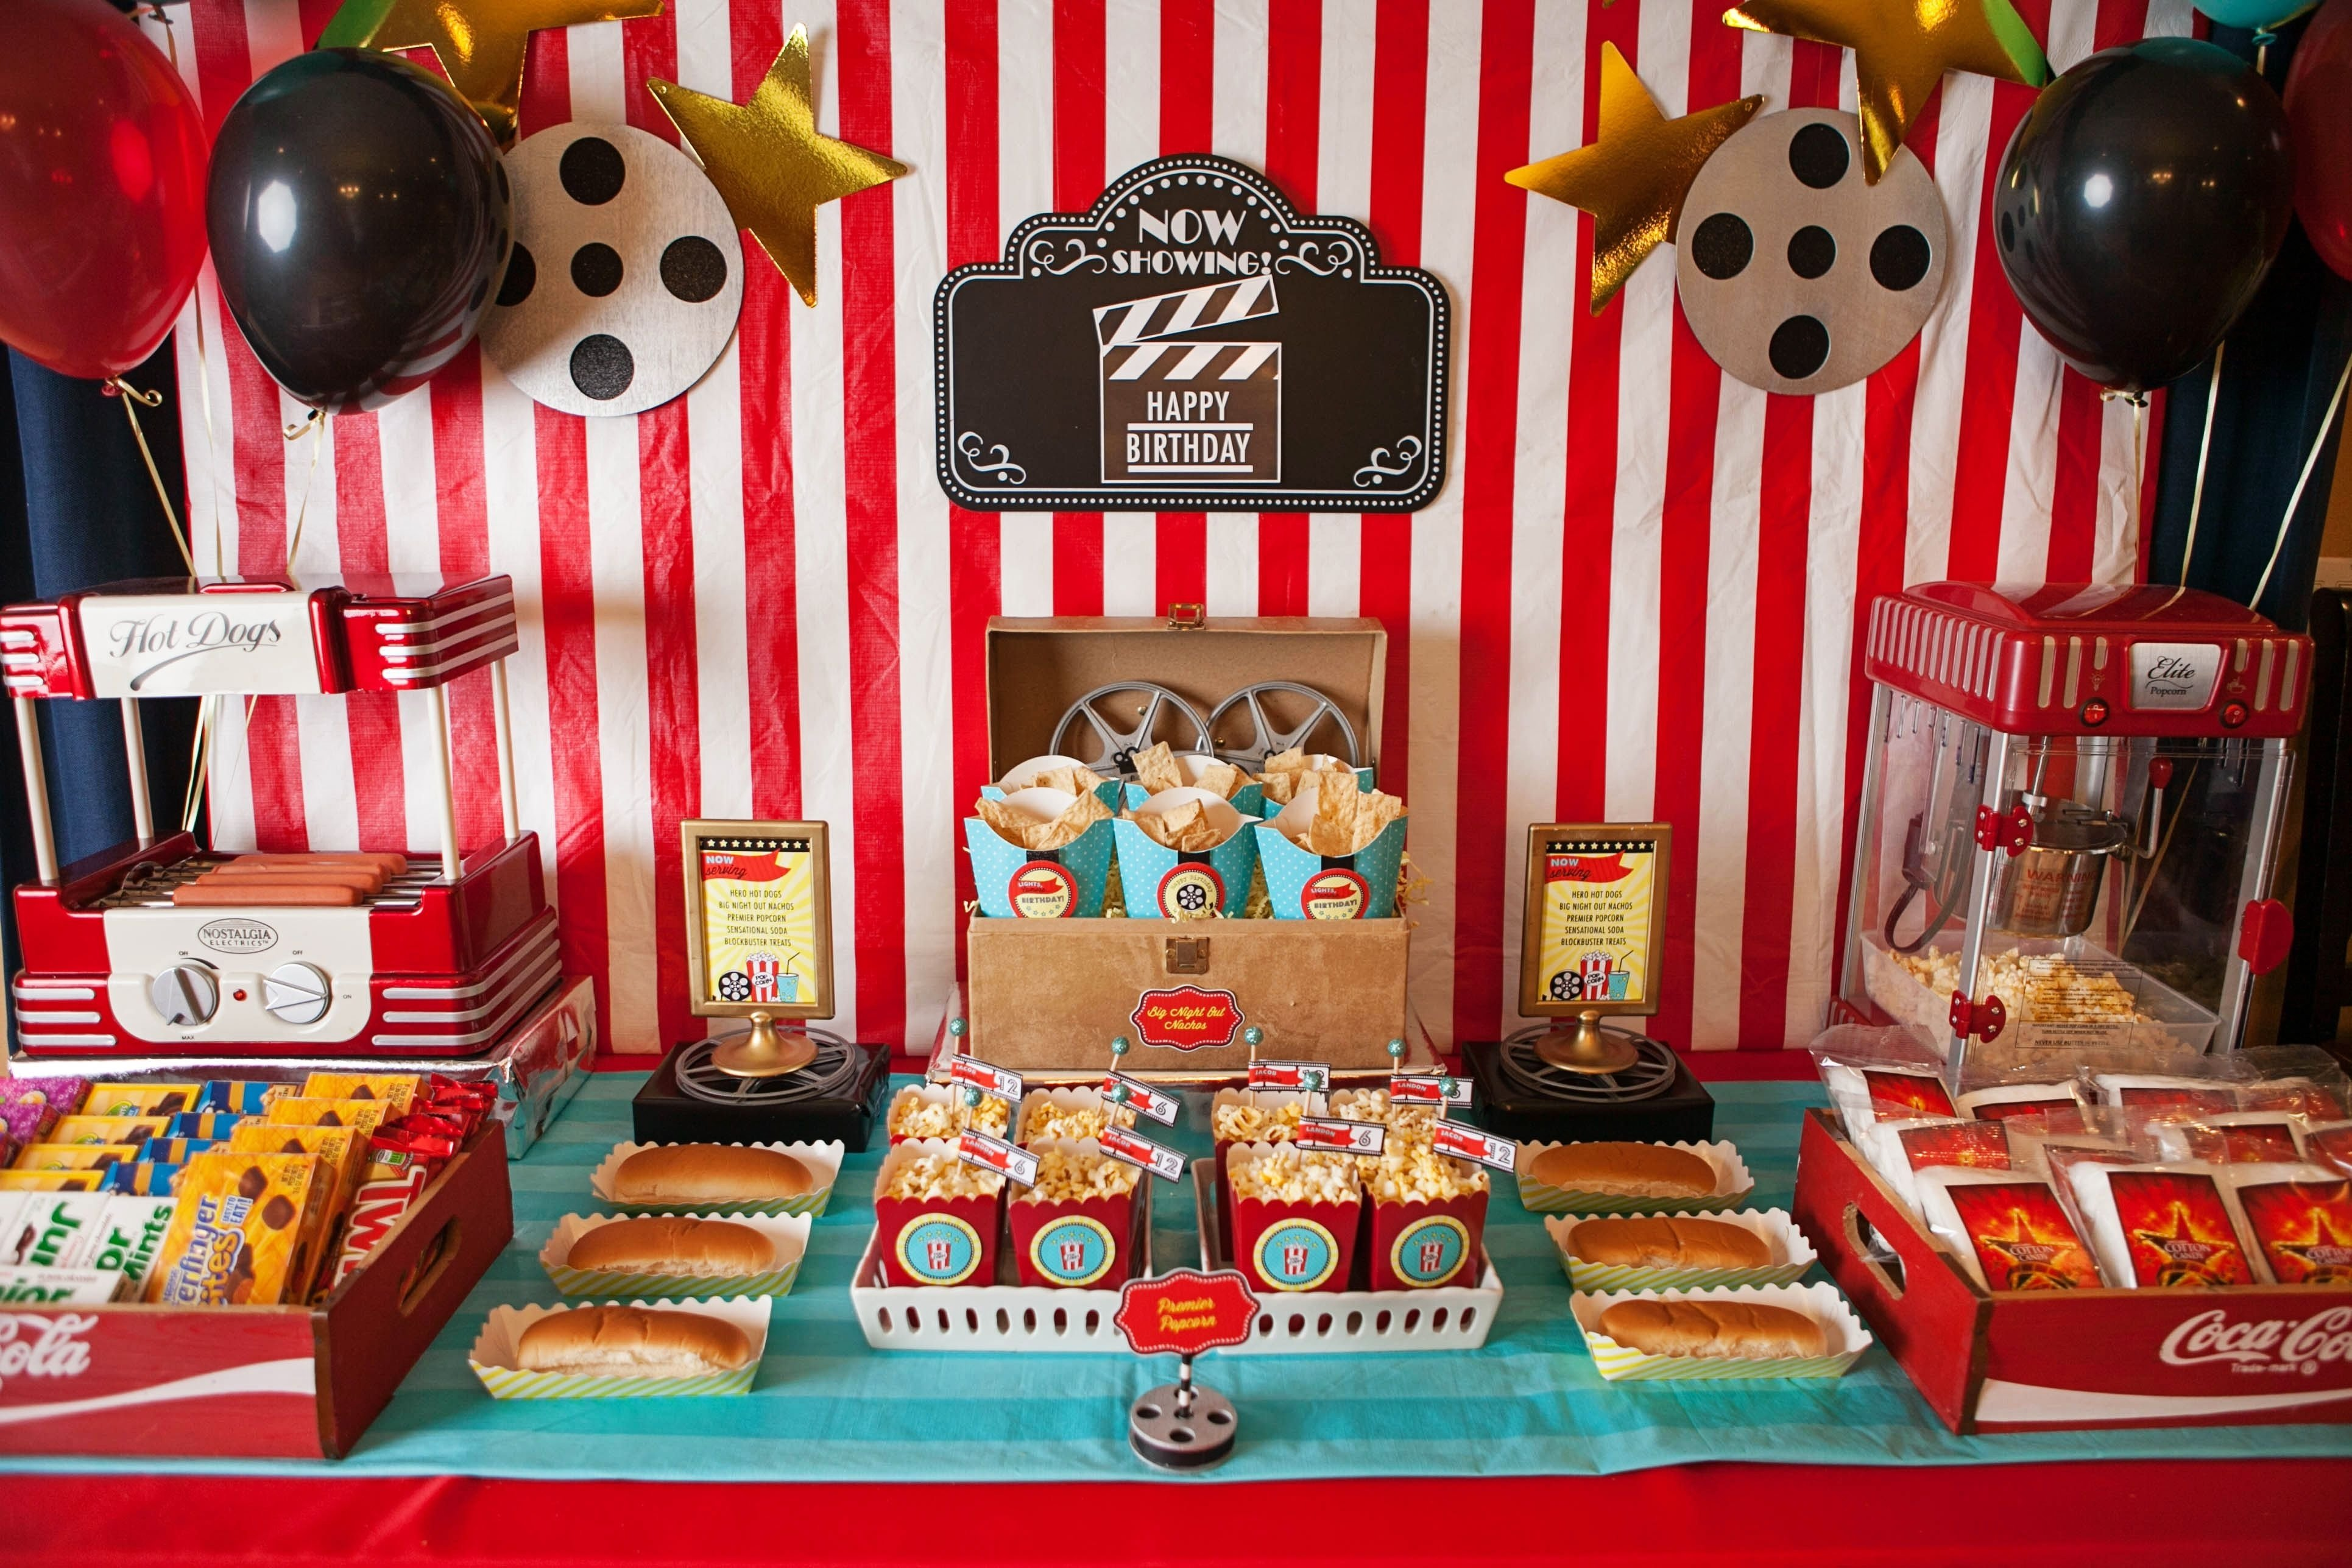 10 Unique Movie Theater Birthday Party Ideas movie theater party birthday party 2015 pinterest movie 2020